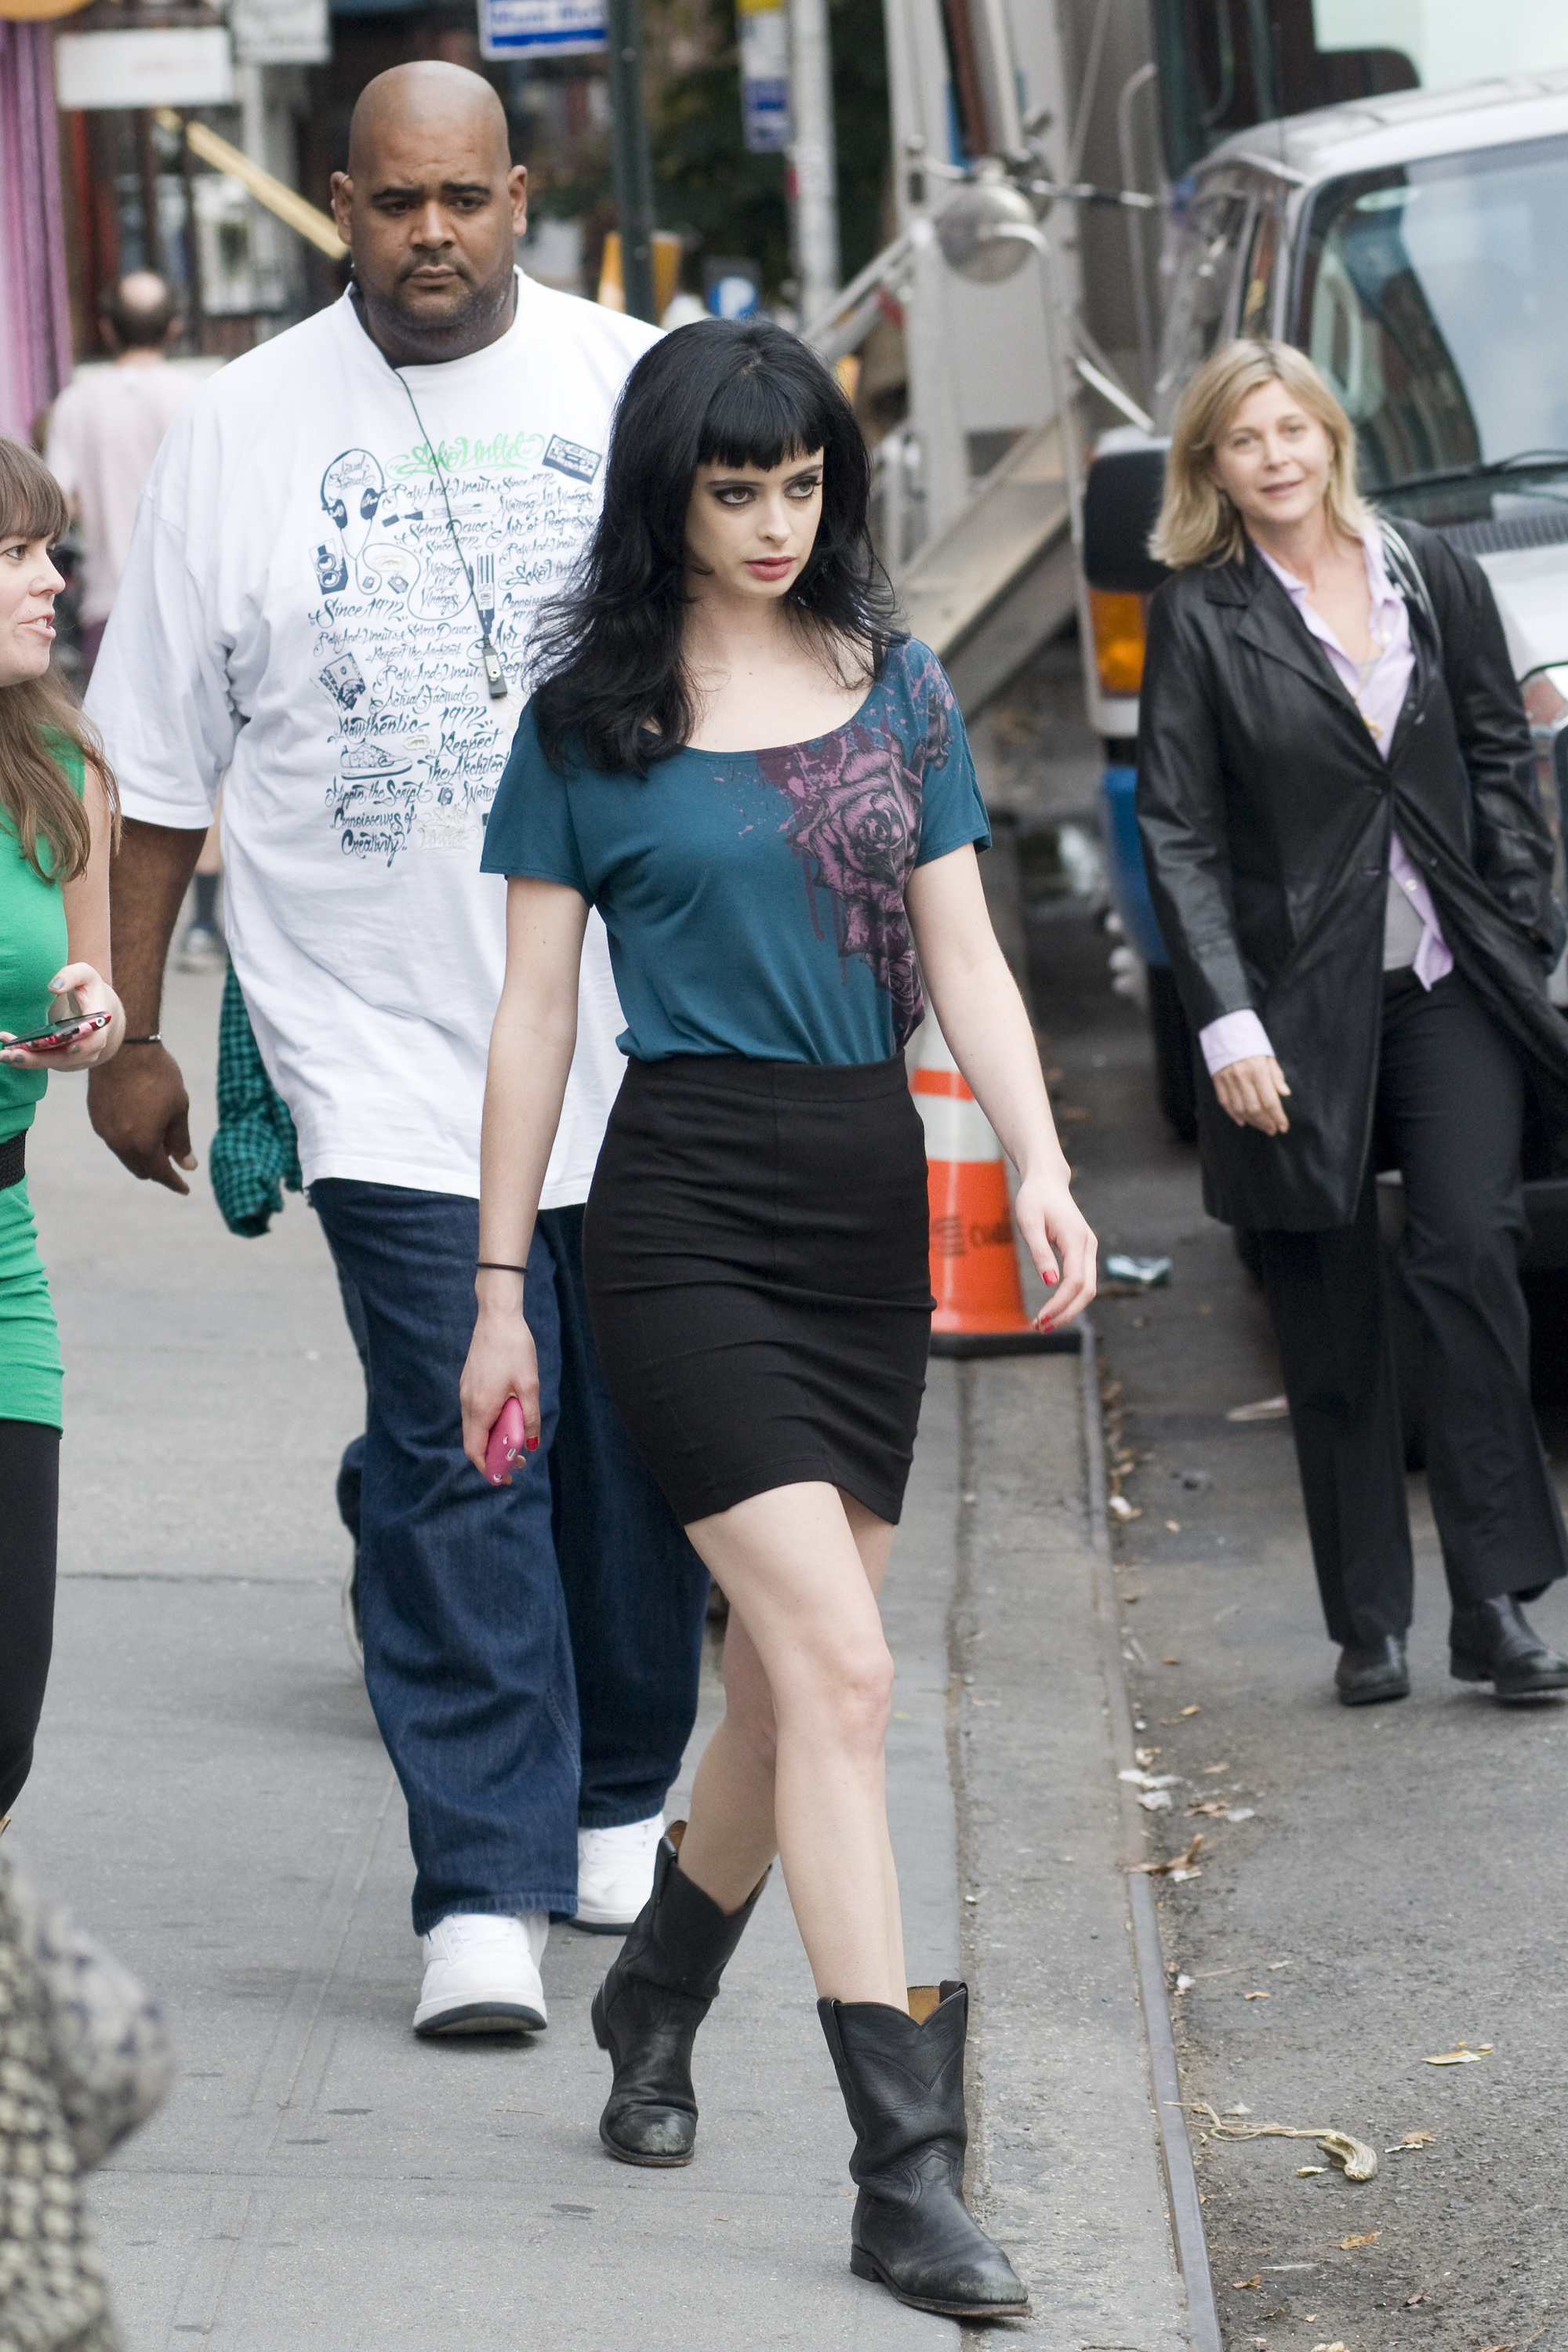 Breaking Bad Filmset Pictures Of Alicia Silverstone And Krysten Ritter On The